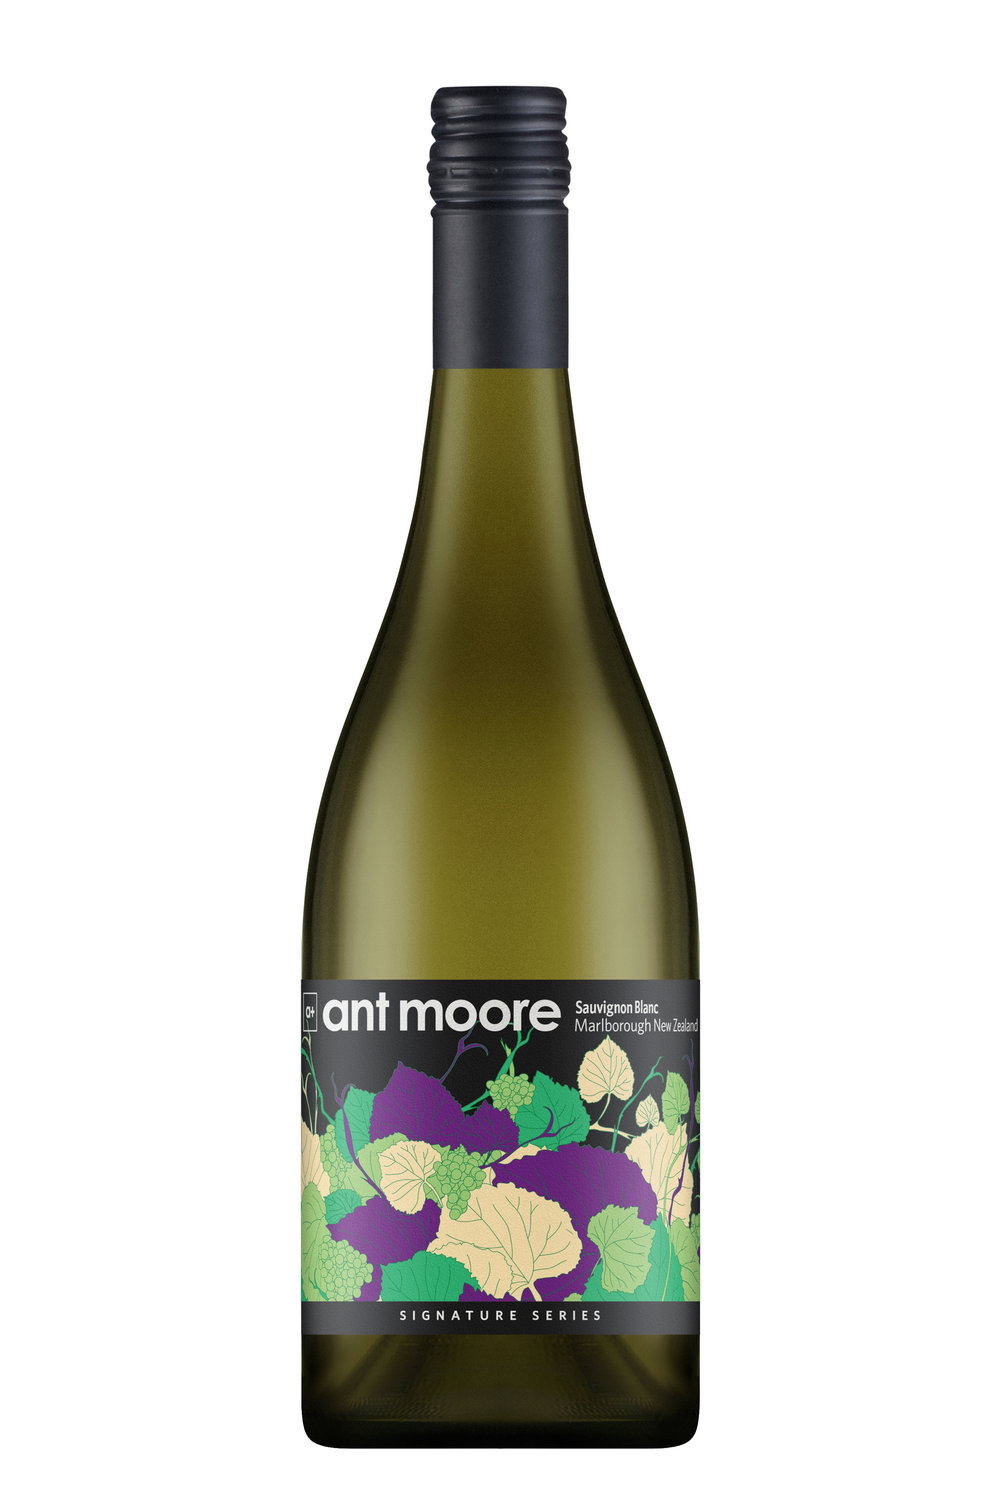 Ant Moore Signature Series Sauvignon Blanc 2018 - A well rounded Sauvignon Blanc, displaying intense lemon flavours with hints of lime. While the nose is subtle, this wine has a great richness, palate length and weight that provides huge flavour intensity on the finish. A drier style, classic Ant Moore style Sauvignon Blanc.